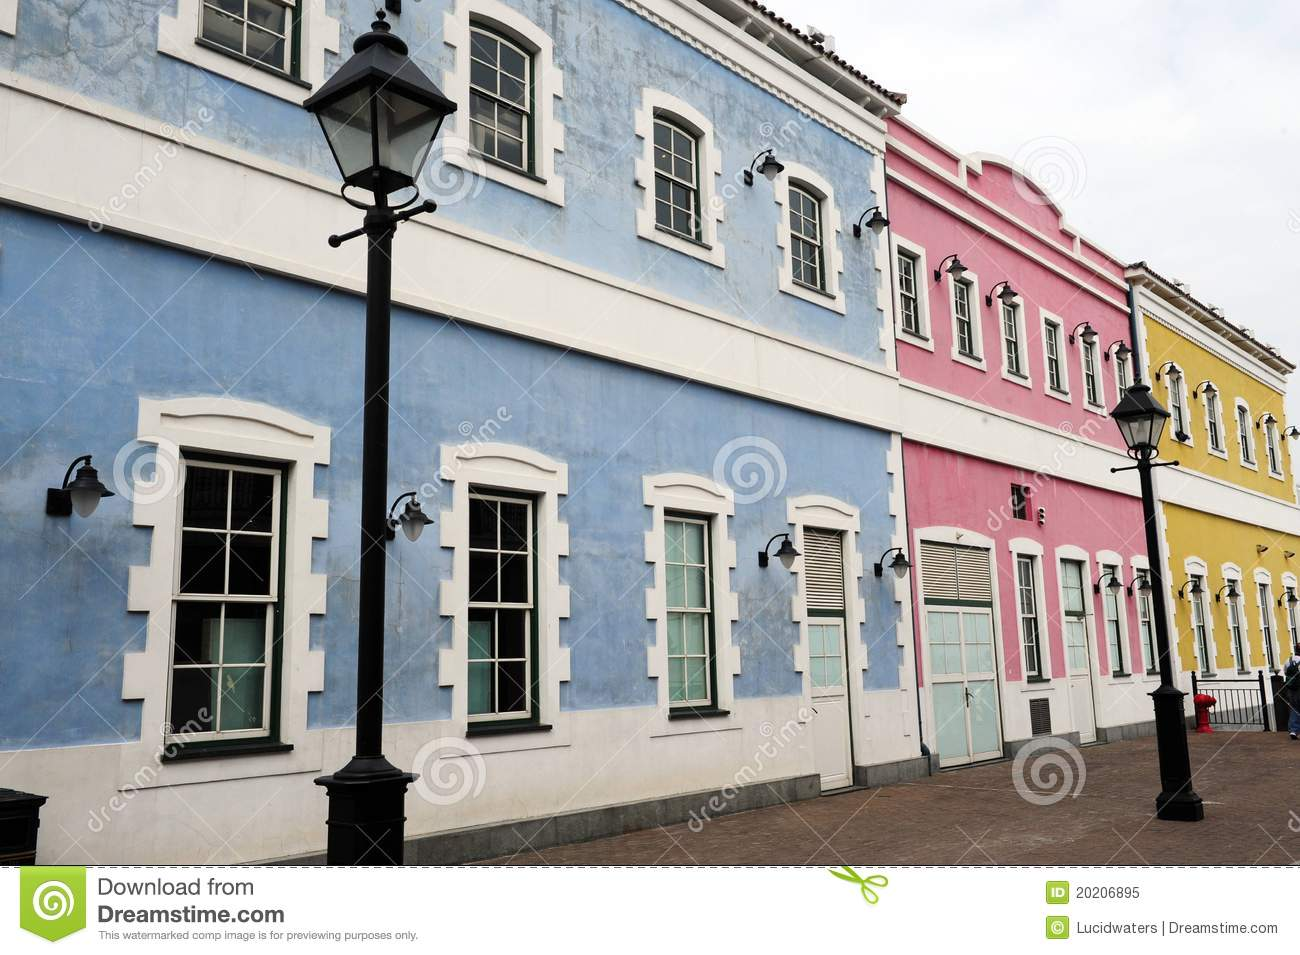 Modern exterior house colors - Portuguese Architecture Royalty Free Stock Photo Image 20206895